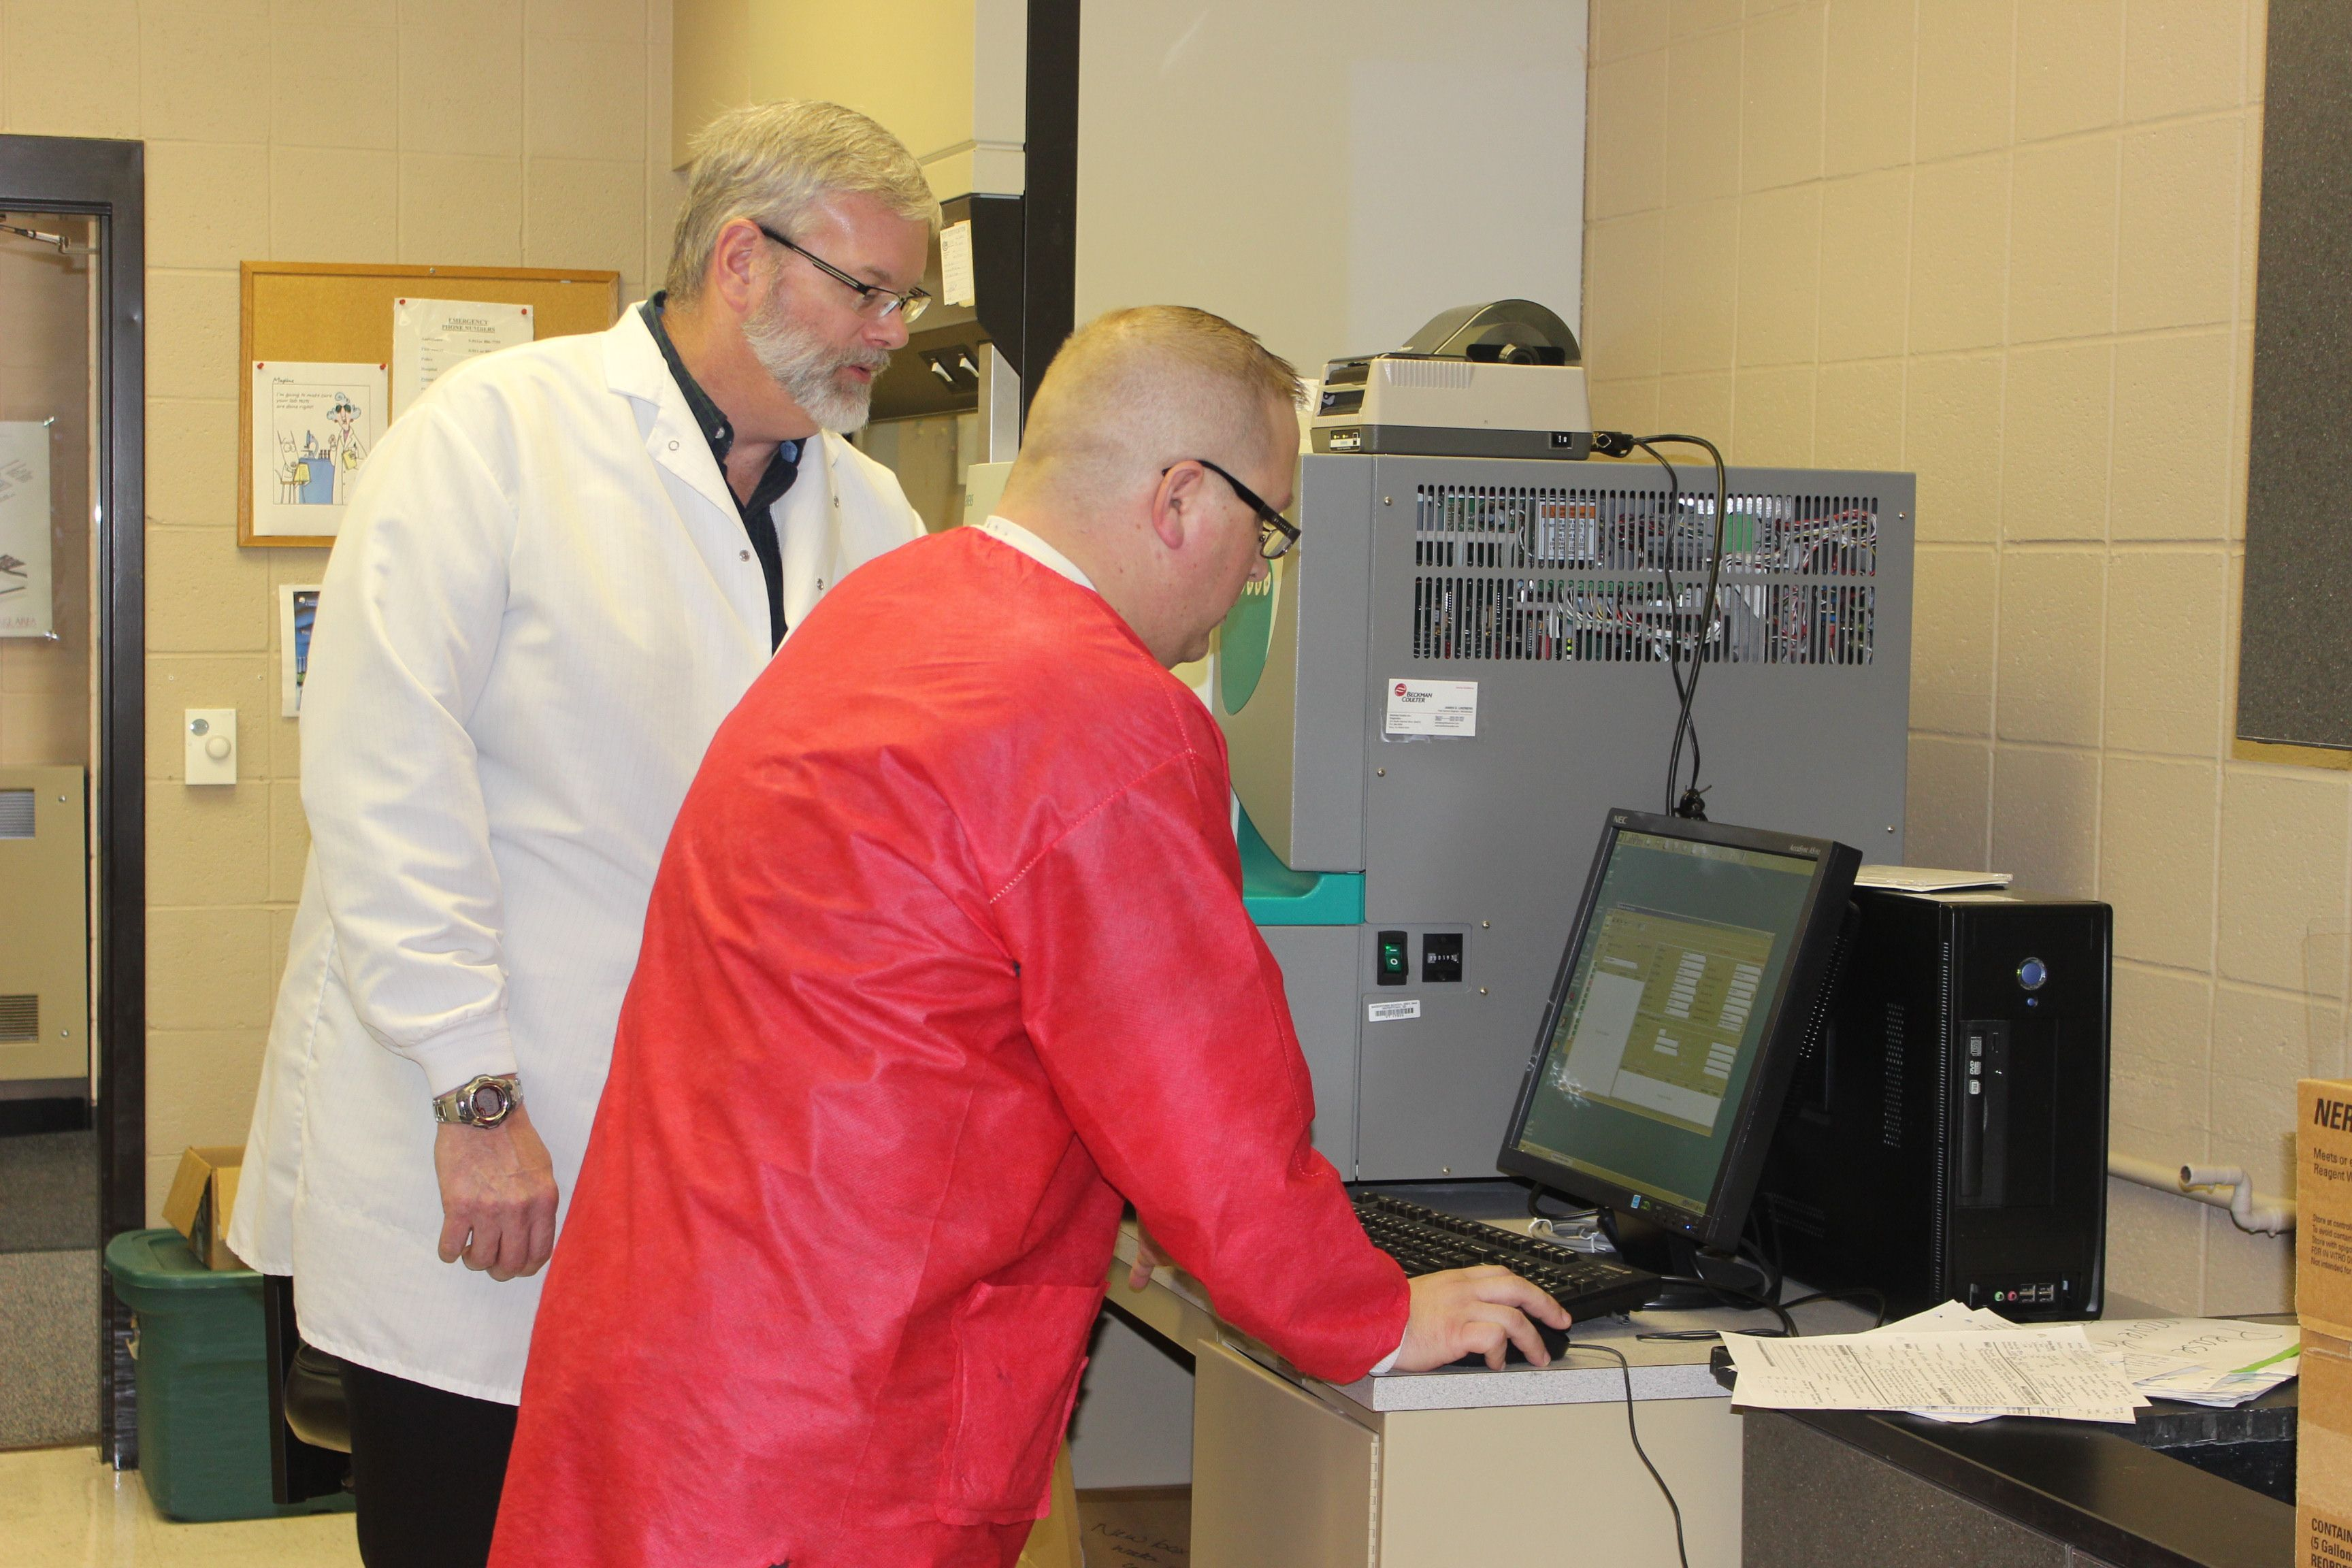 Micro Sim Lab Learn More About Our Medical Lab Tech Program At Www